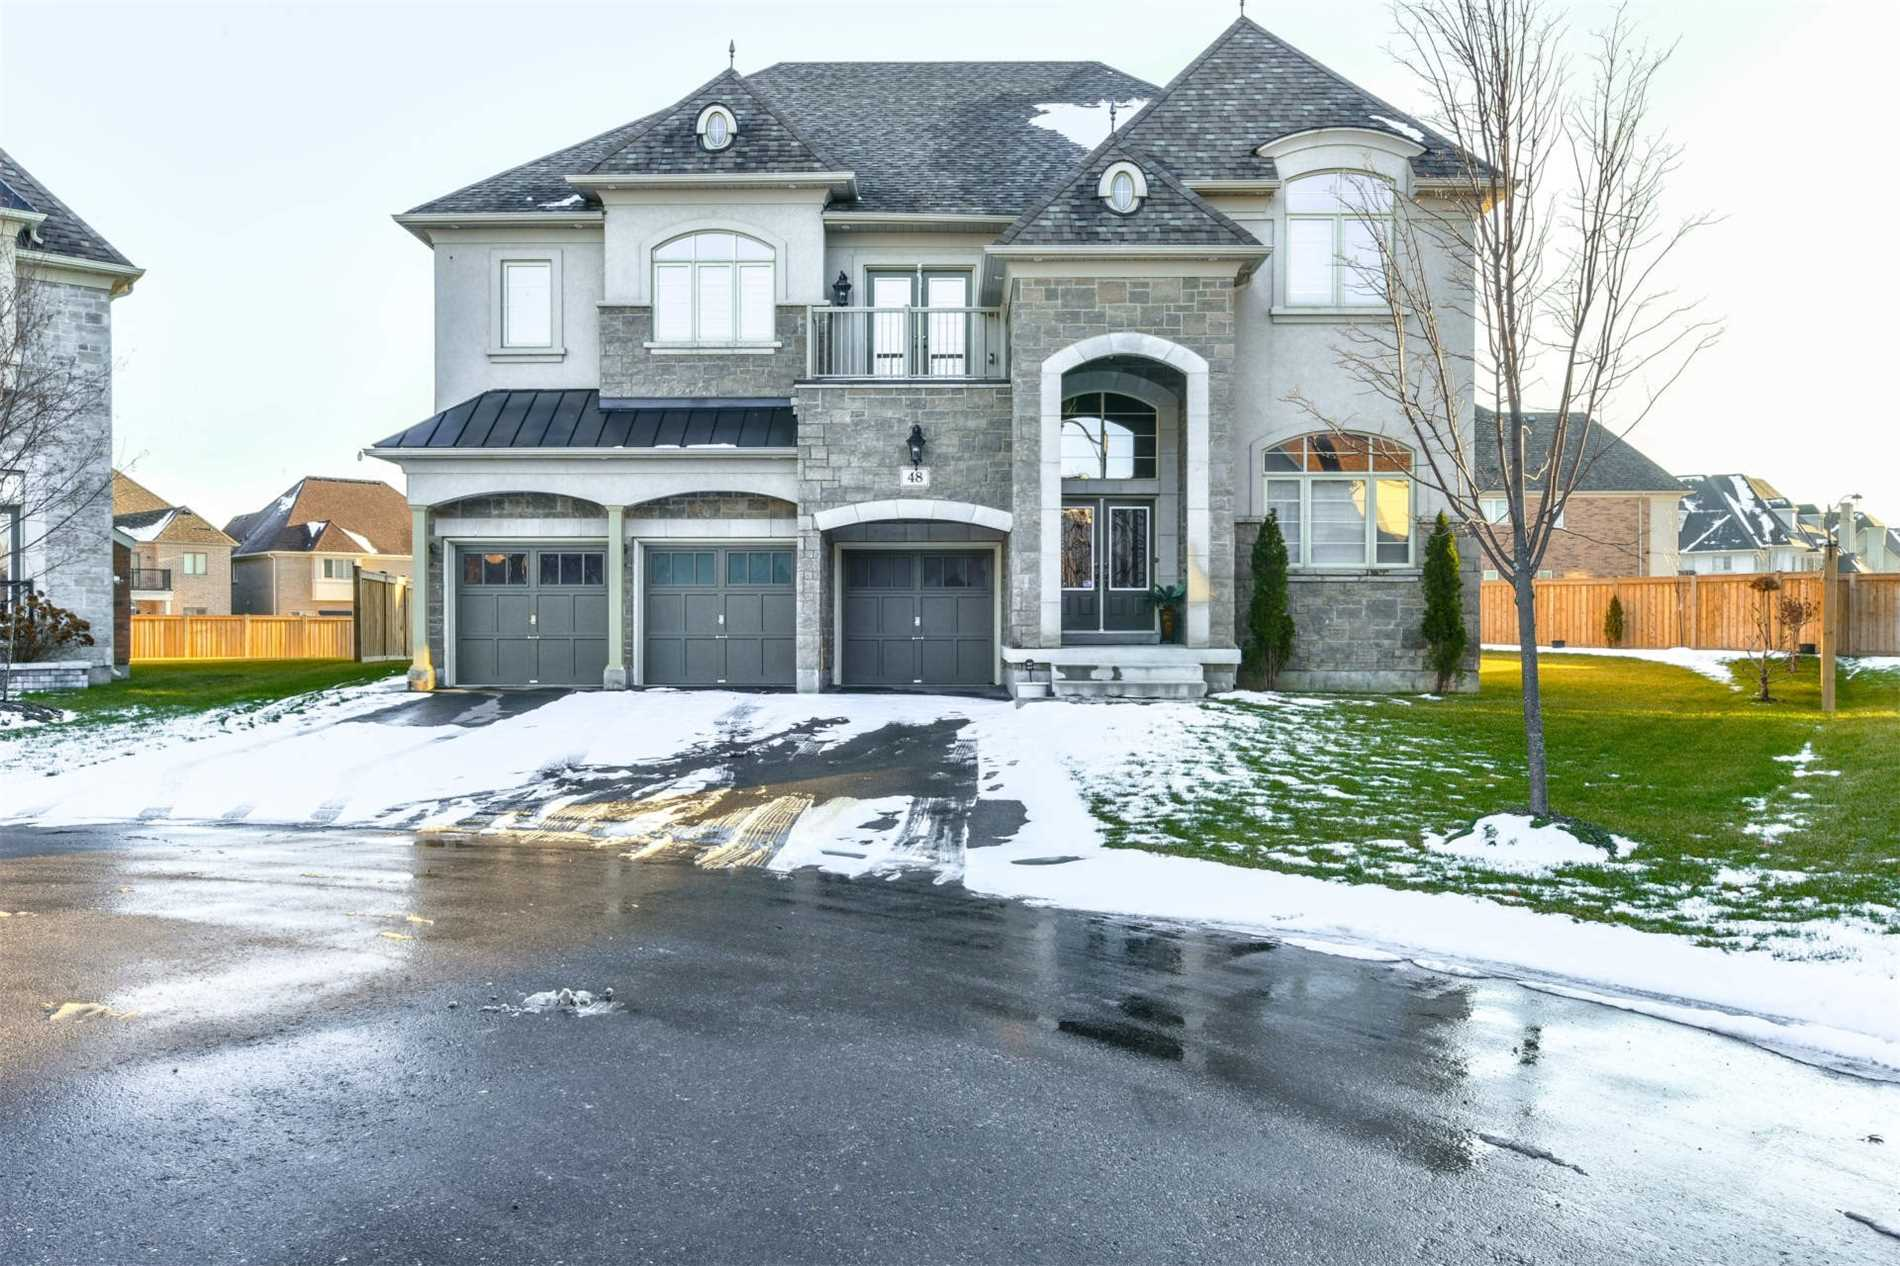 5 Bedroom Houses Brampton 91 5 Bed Houses For Sale Page 2